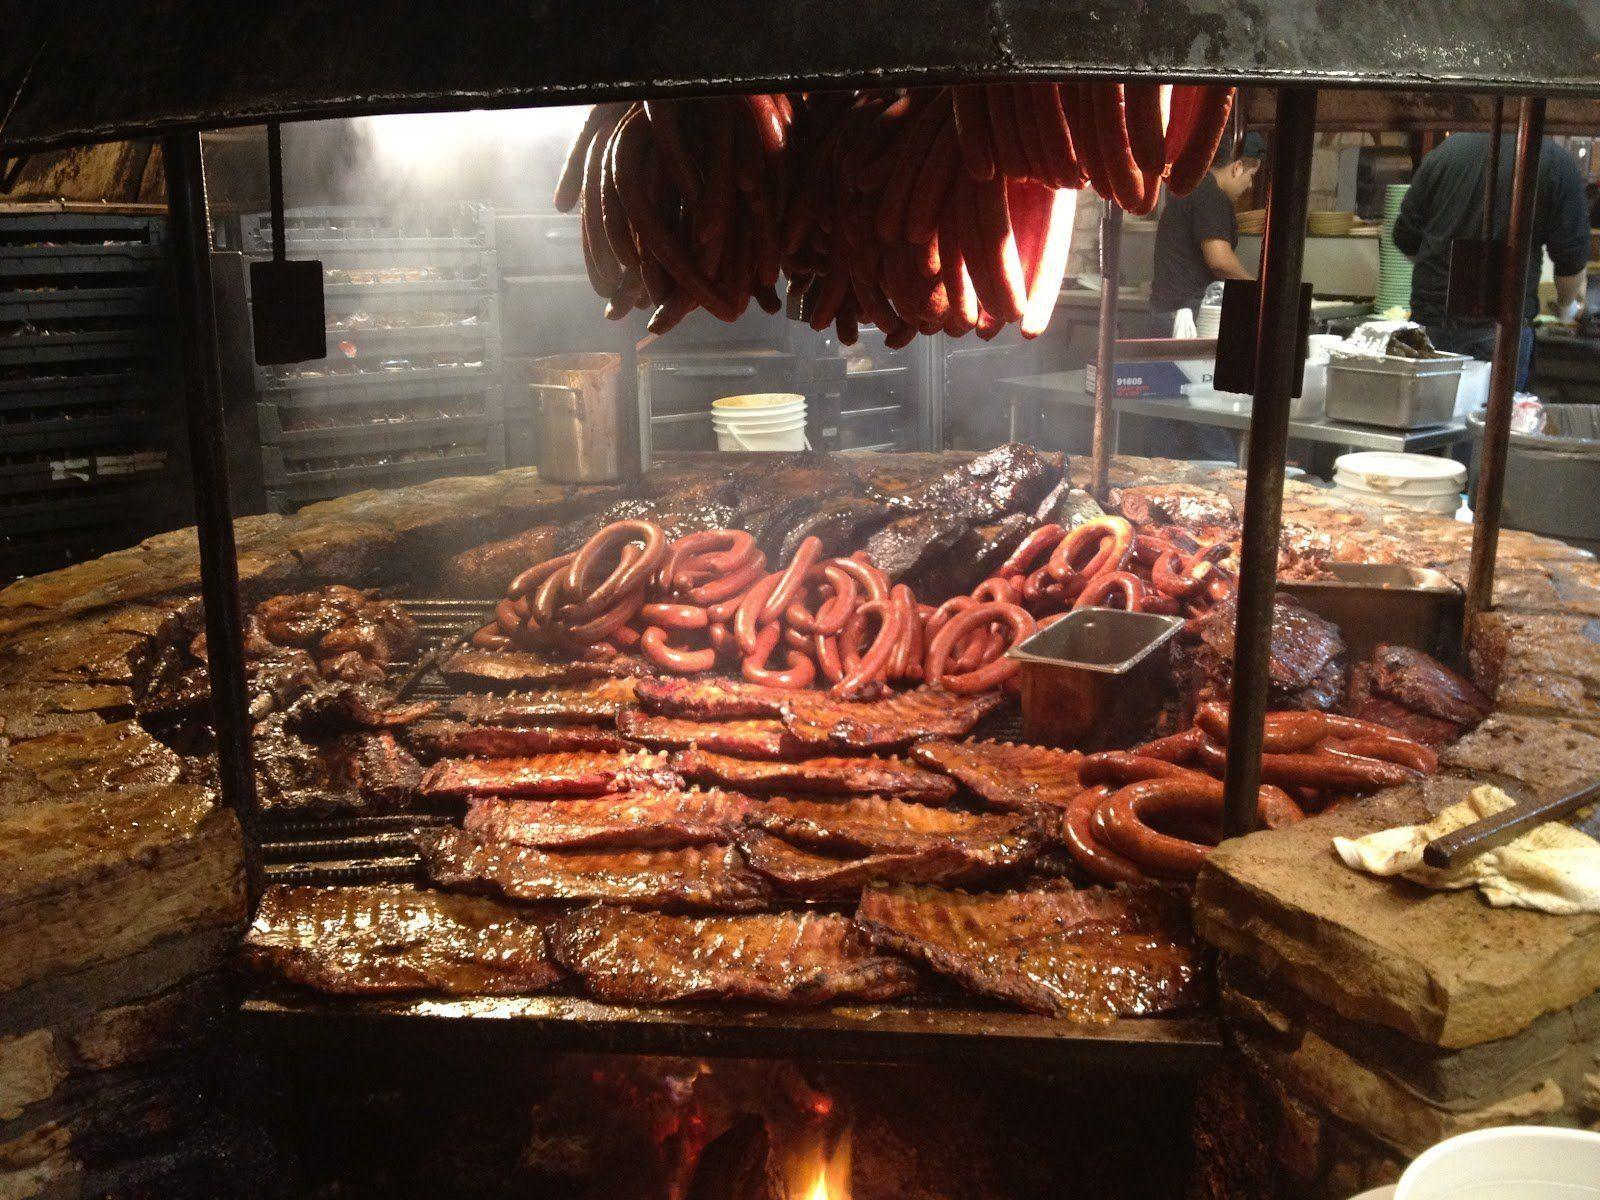 The salt lick barbecue